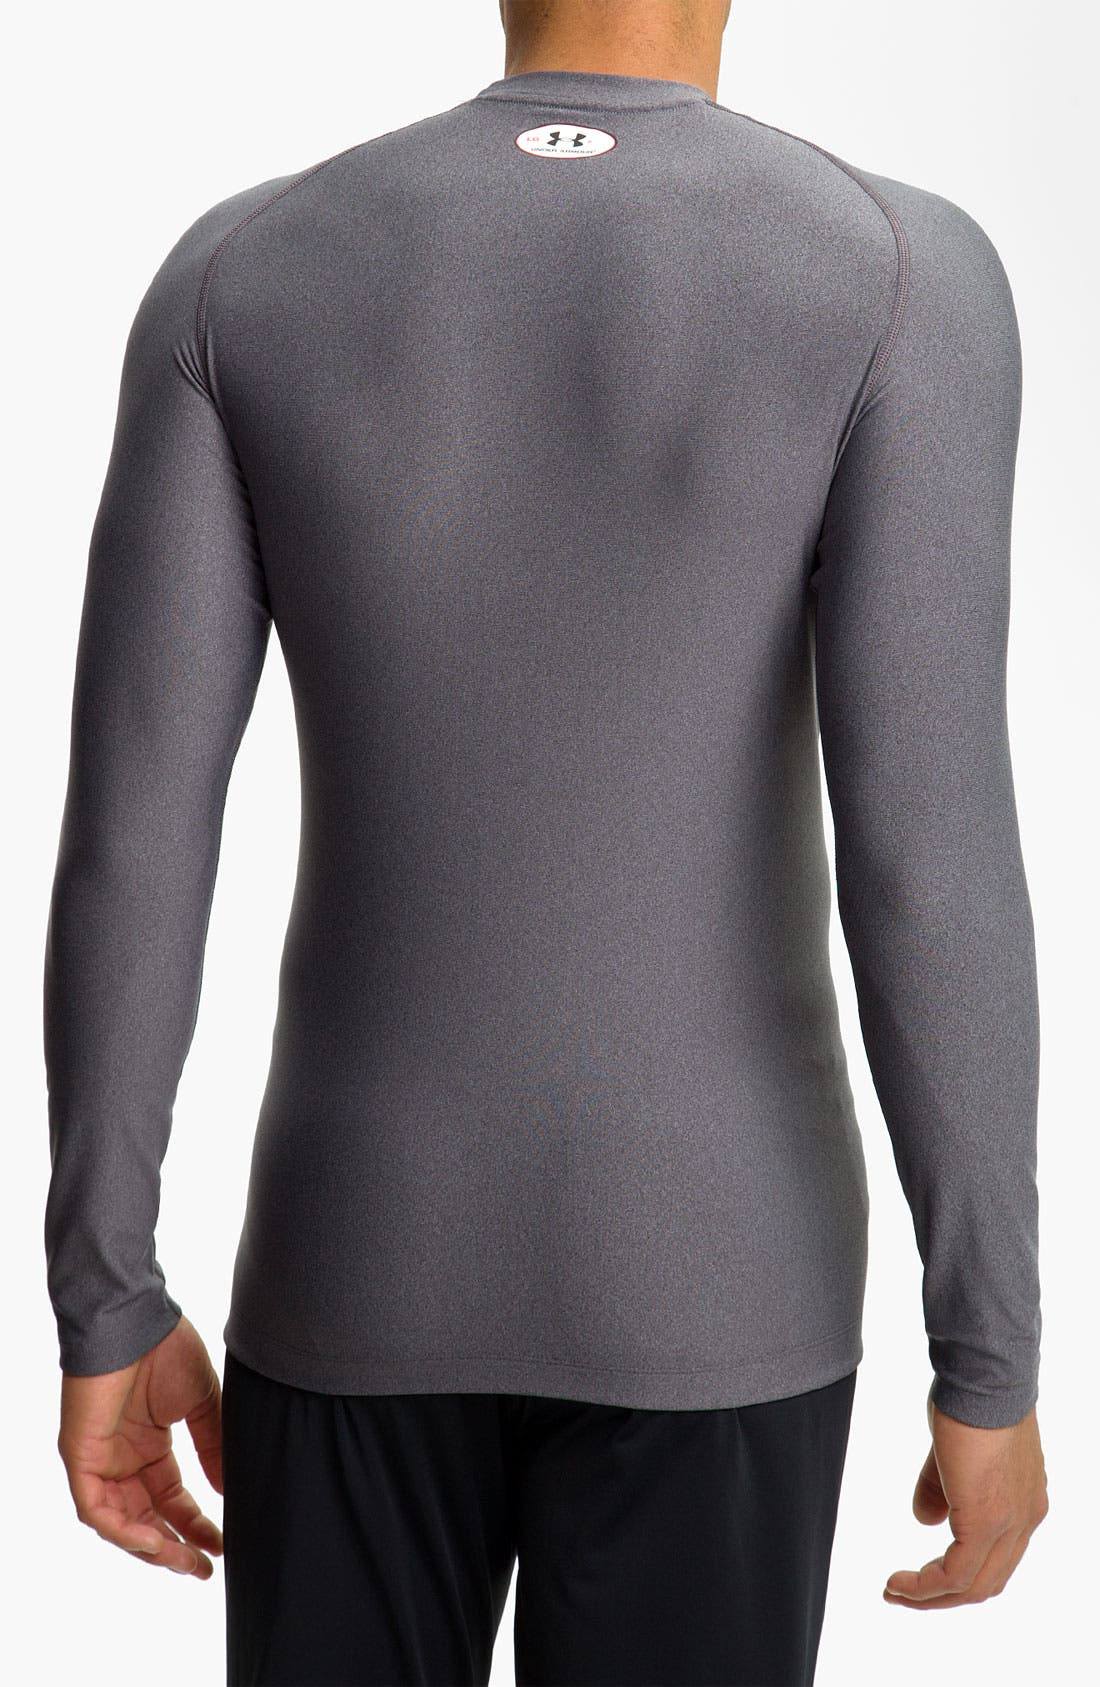 Alternate Image 2  - Under Armour 'Evo' ColdGear® Compression T-Shirt (Online Exclusive)